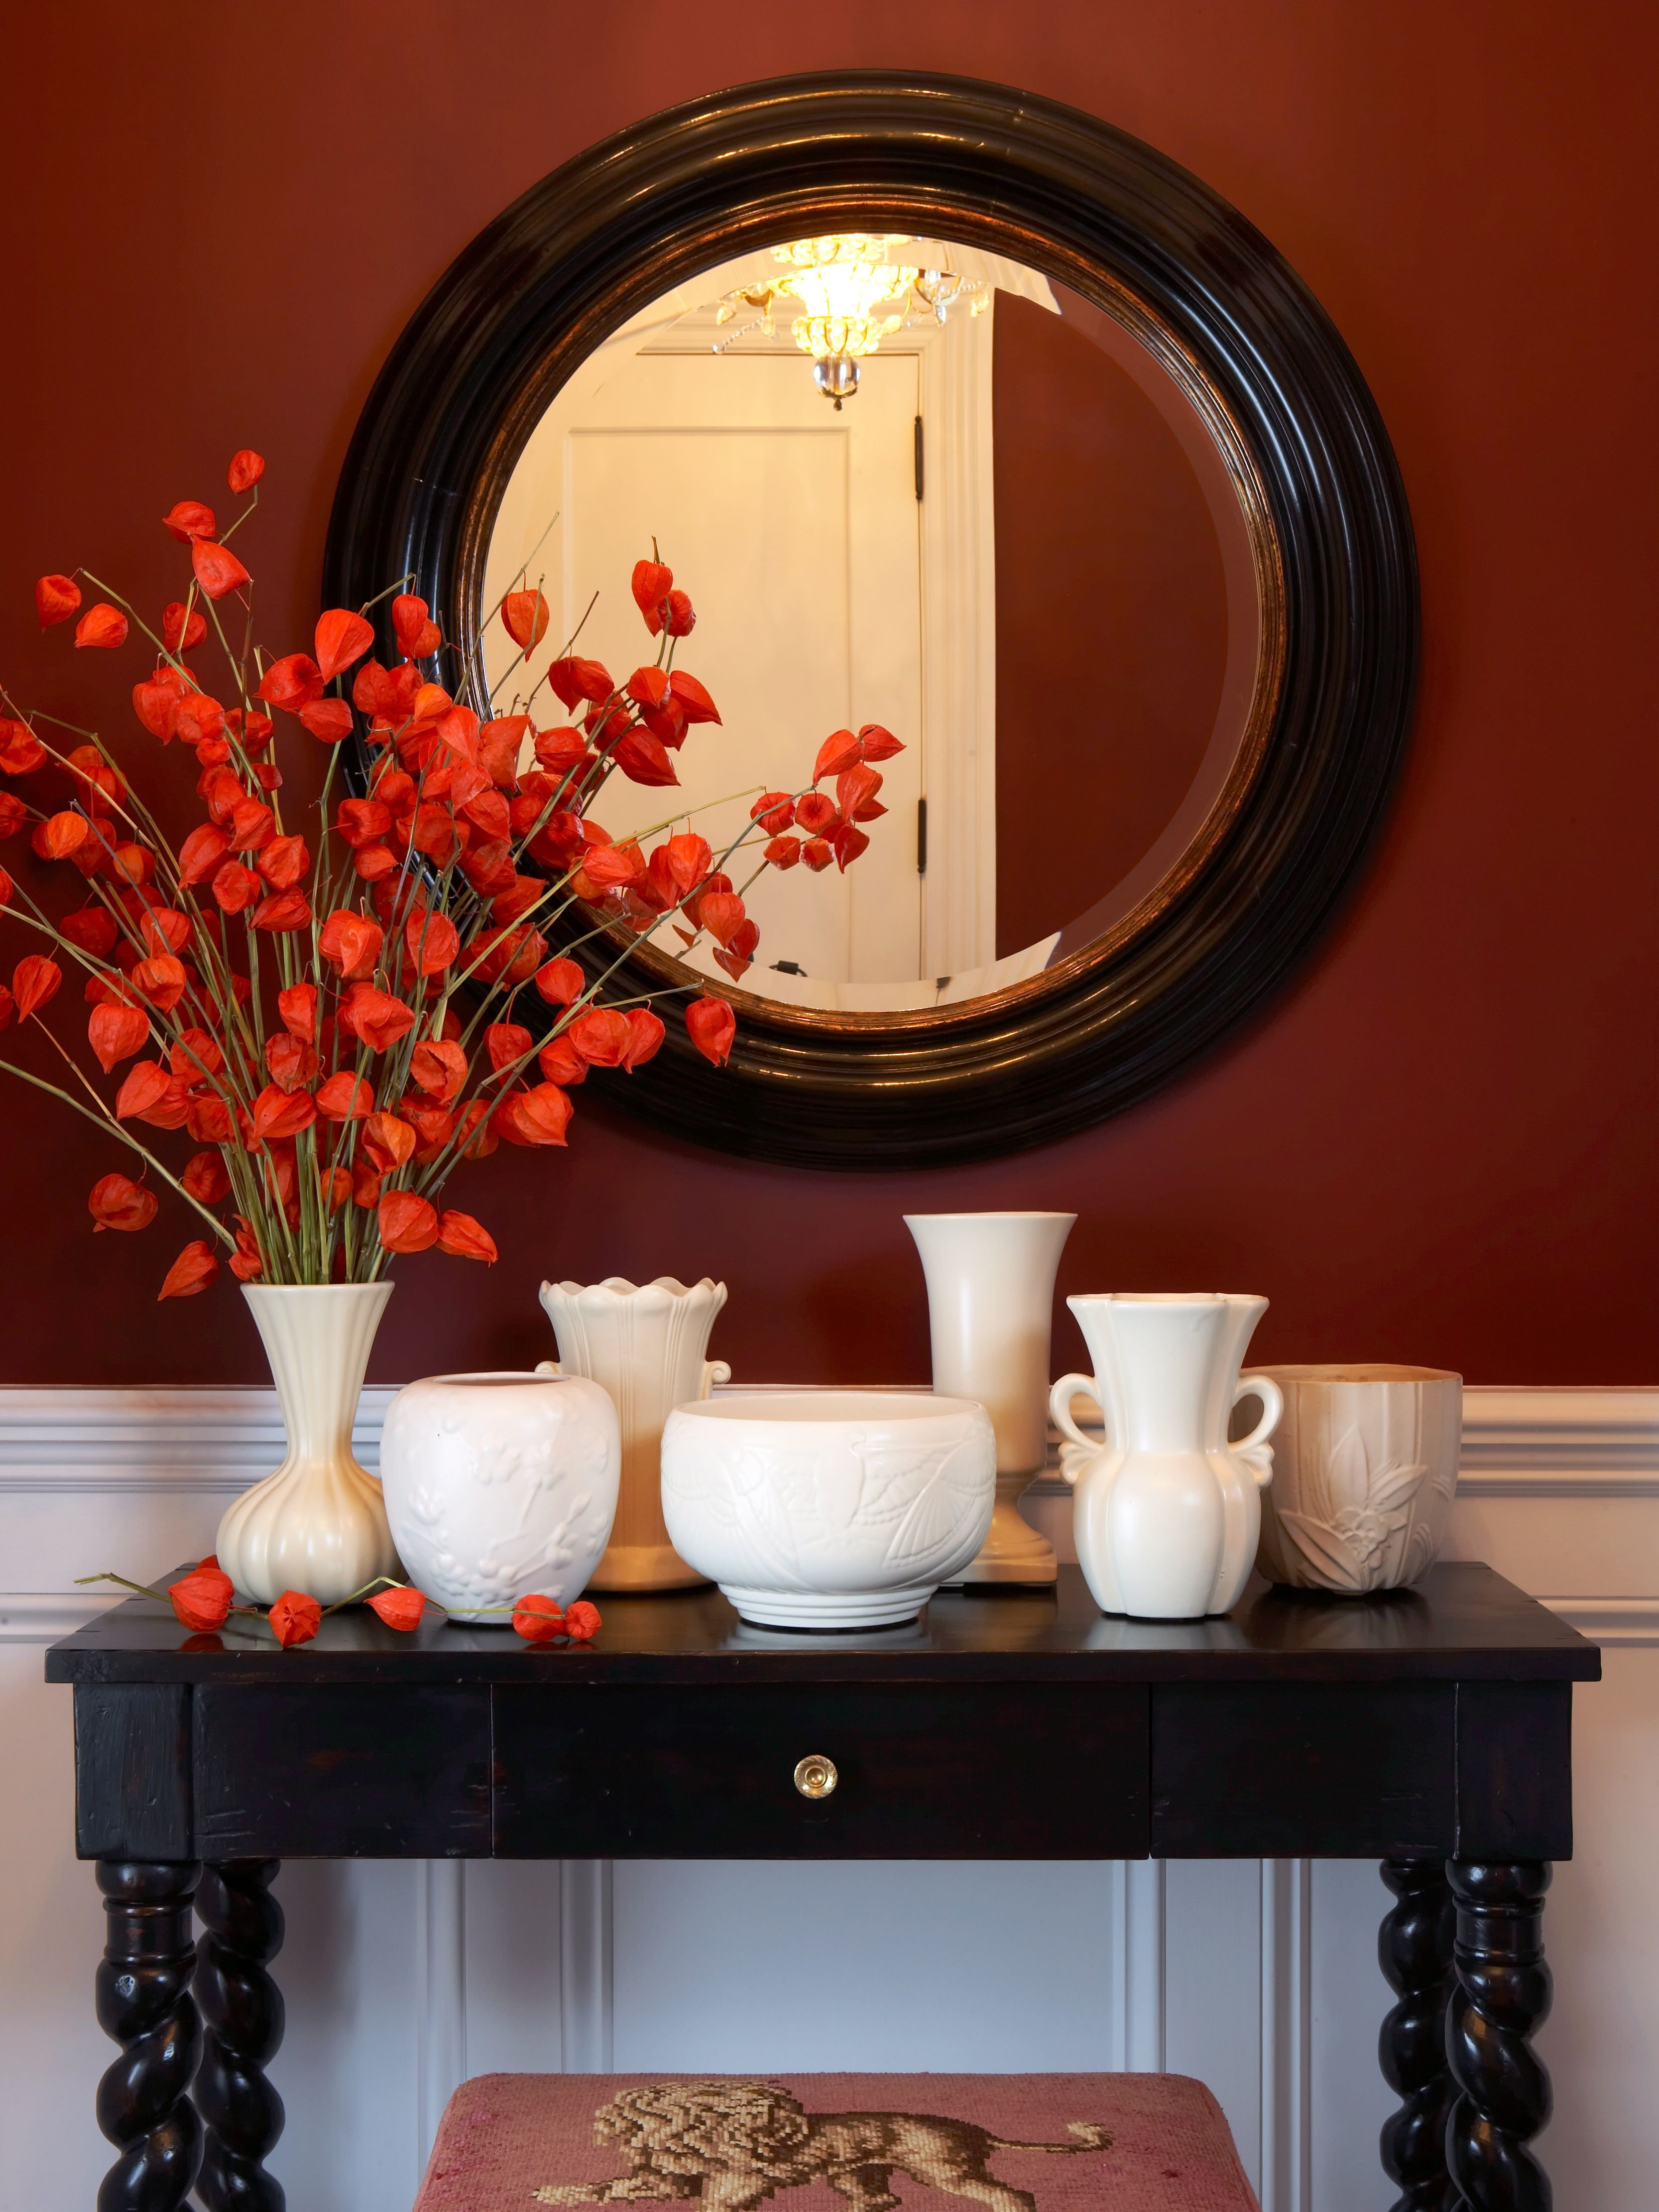 Transitional Entryway With Burgundy Walls, Orange Flowers, & White Accents